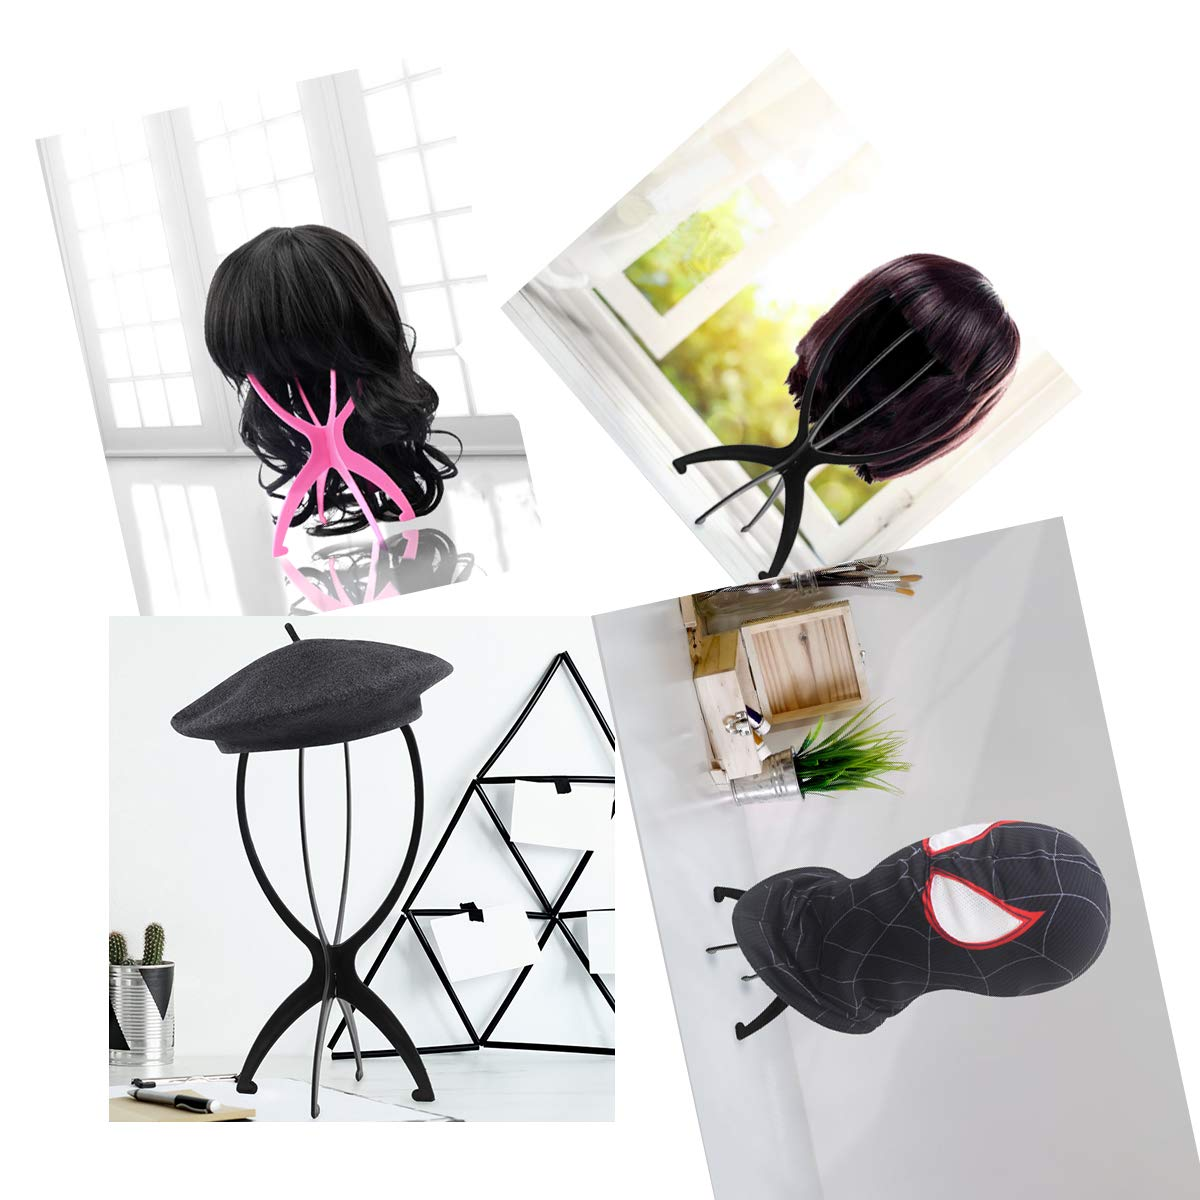 Wig Stand, 3 Pack Short Wig Stands for Wigs,14.2 Inch Wig Stand Holder,Portable Collapsible Wig Dryer,Wig Stands for Hats and Hairpieces - For Home, Salon and Travel (Black)